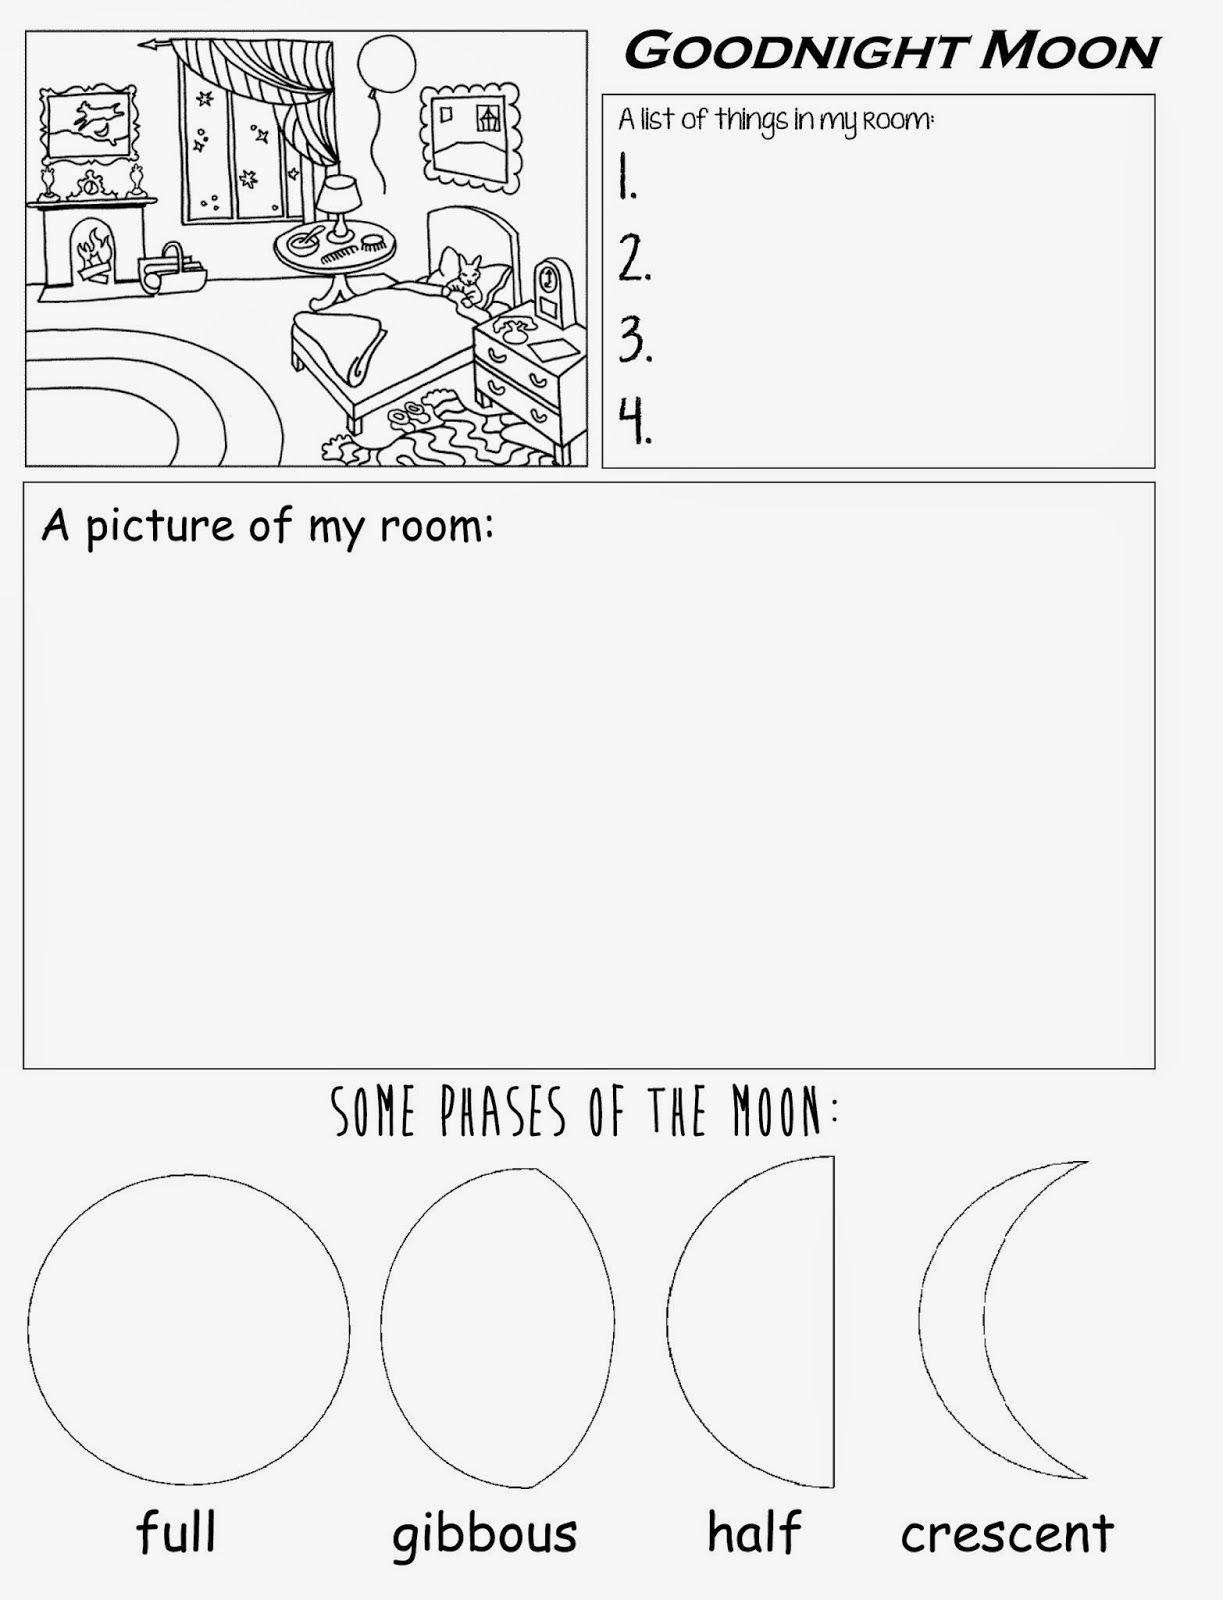 worksheet ideas kindergarten reading printable worksheets free first grade sequencing esl kids coloring sheets fantastic photo saxon math homeschool reviews 6th test prep puzzles